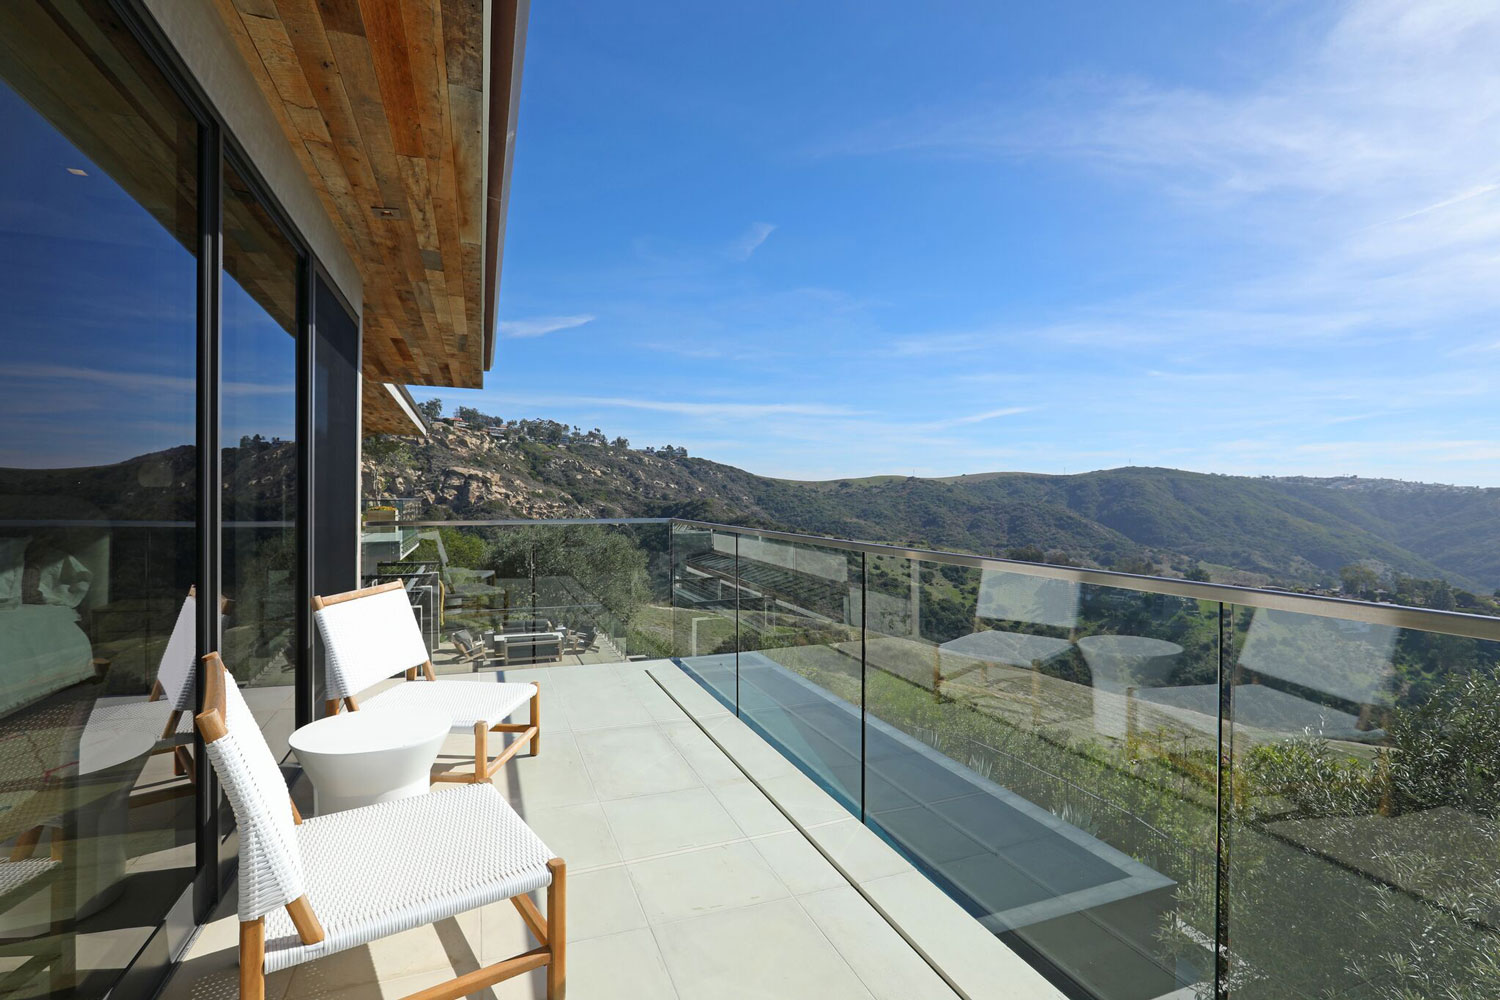 temple-hills-balcony-seating-mountains.jpg